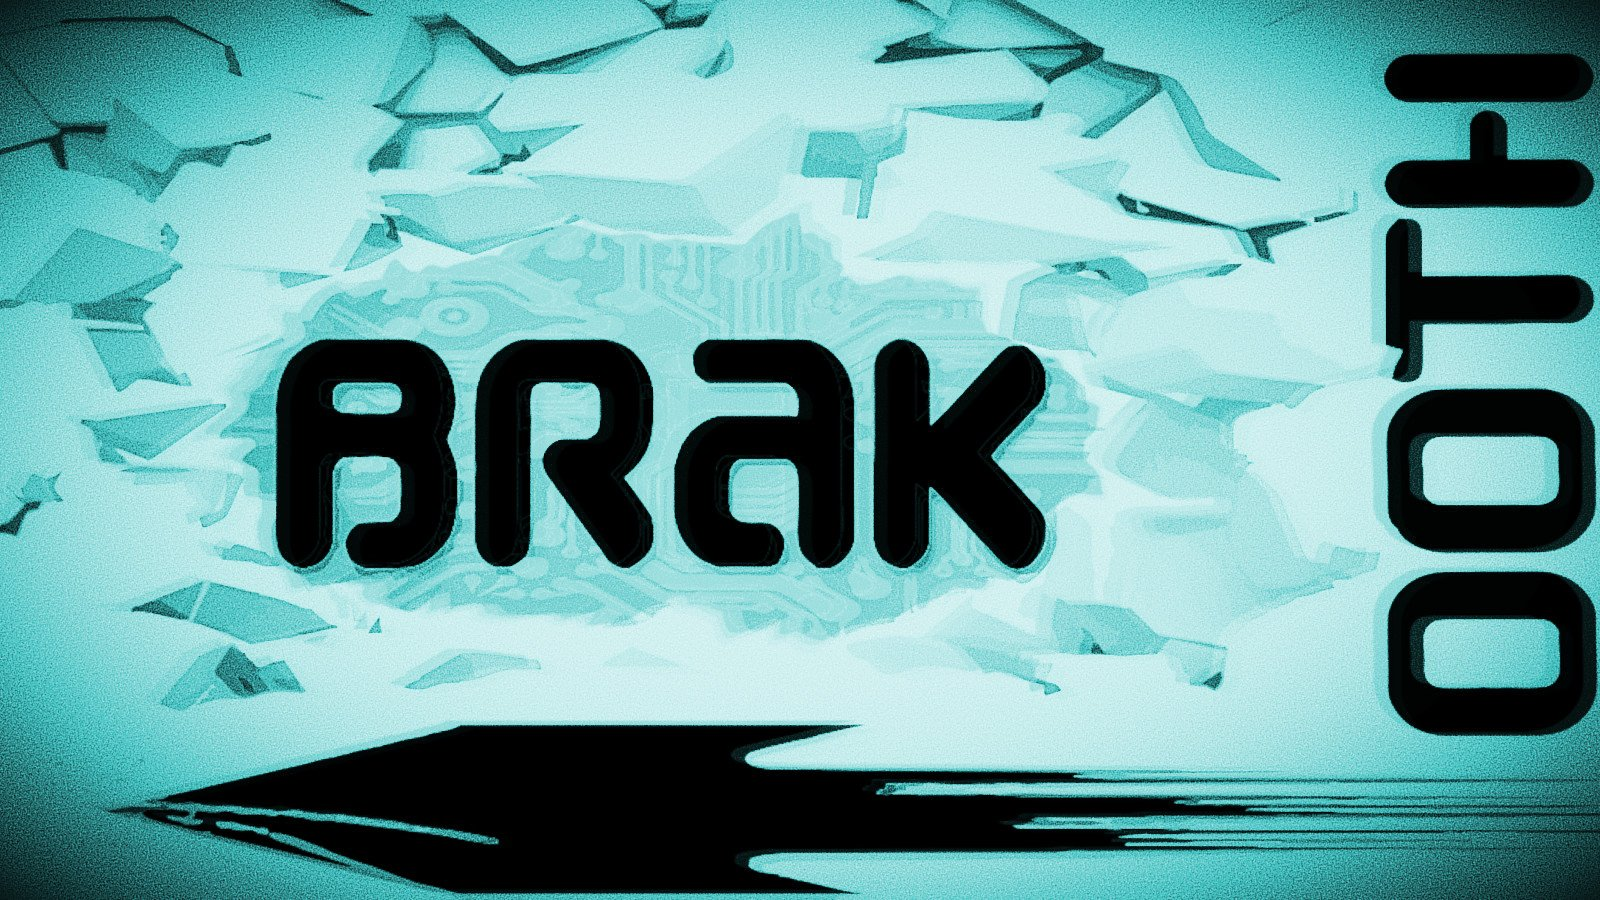 BrakTooth vulnerabilities can enable code execution on affected devices or crash them